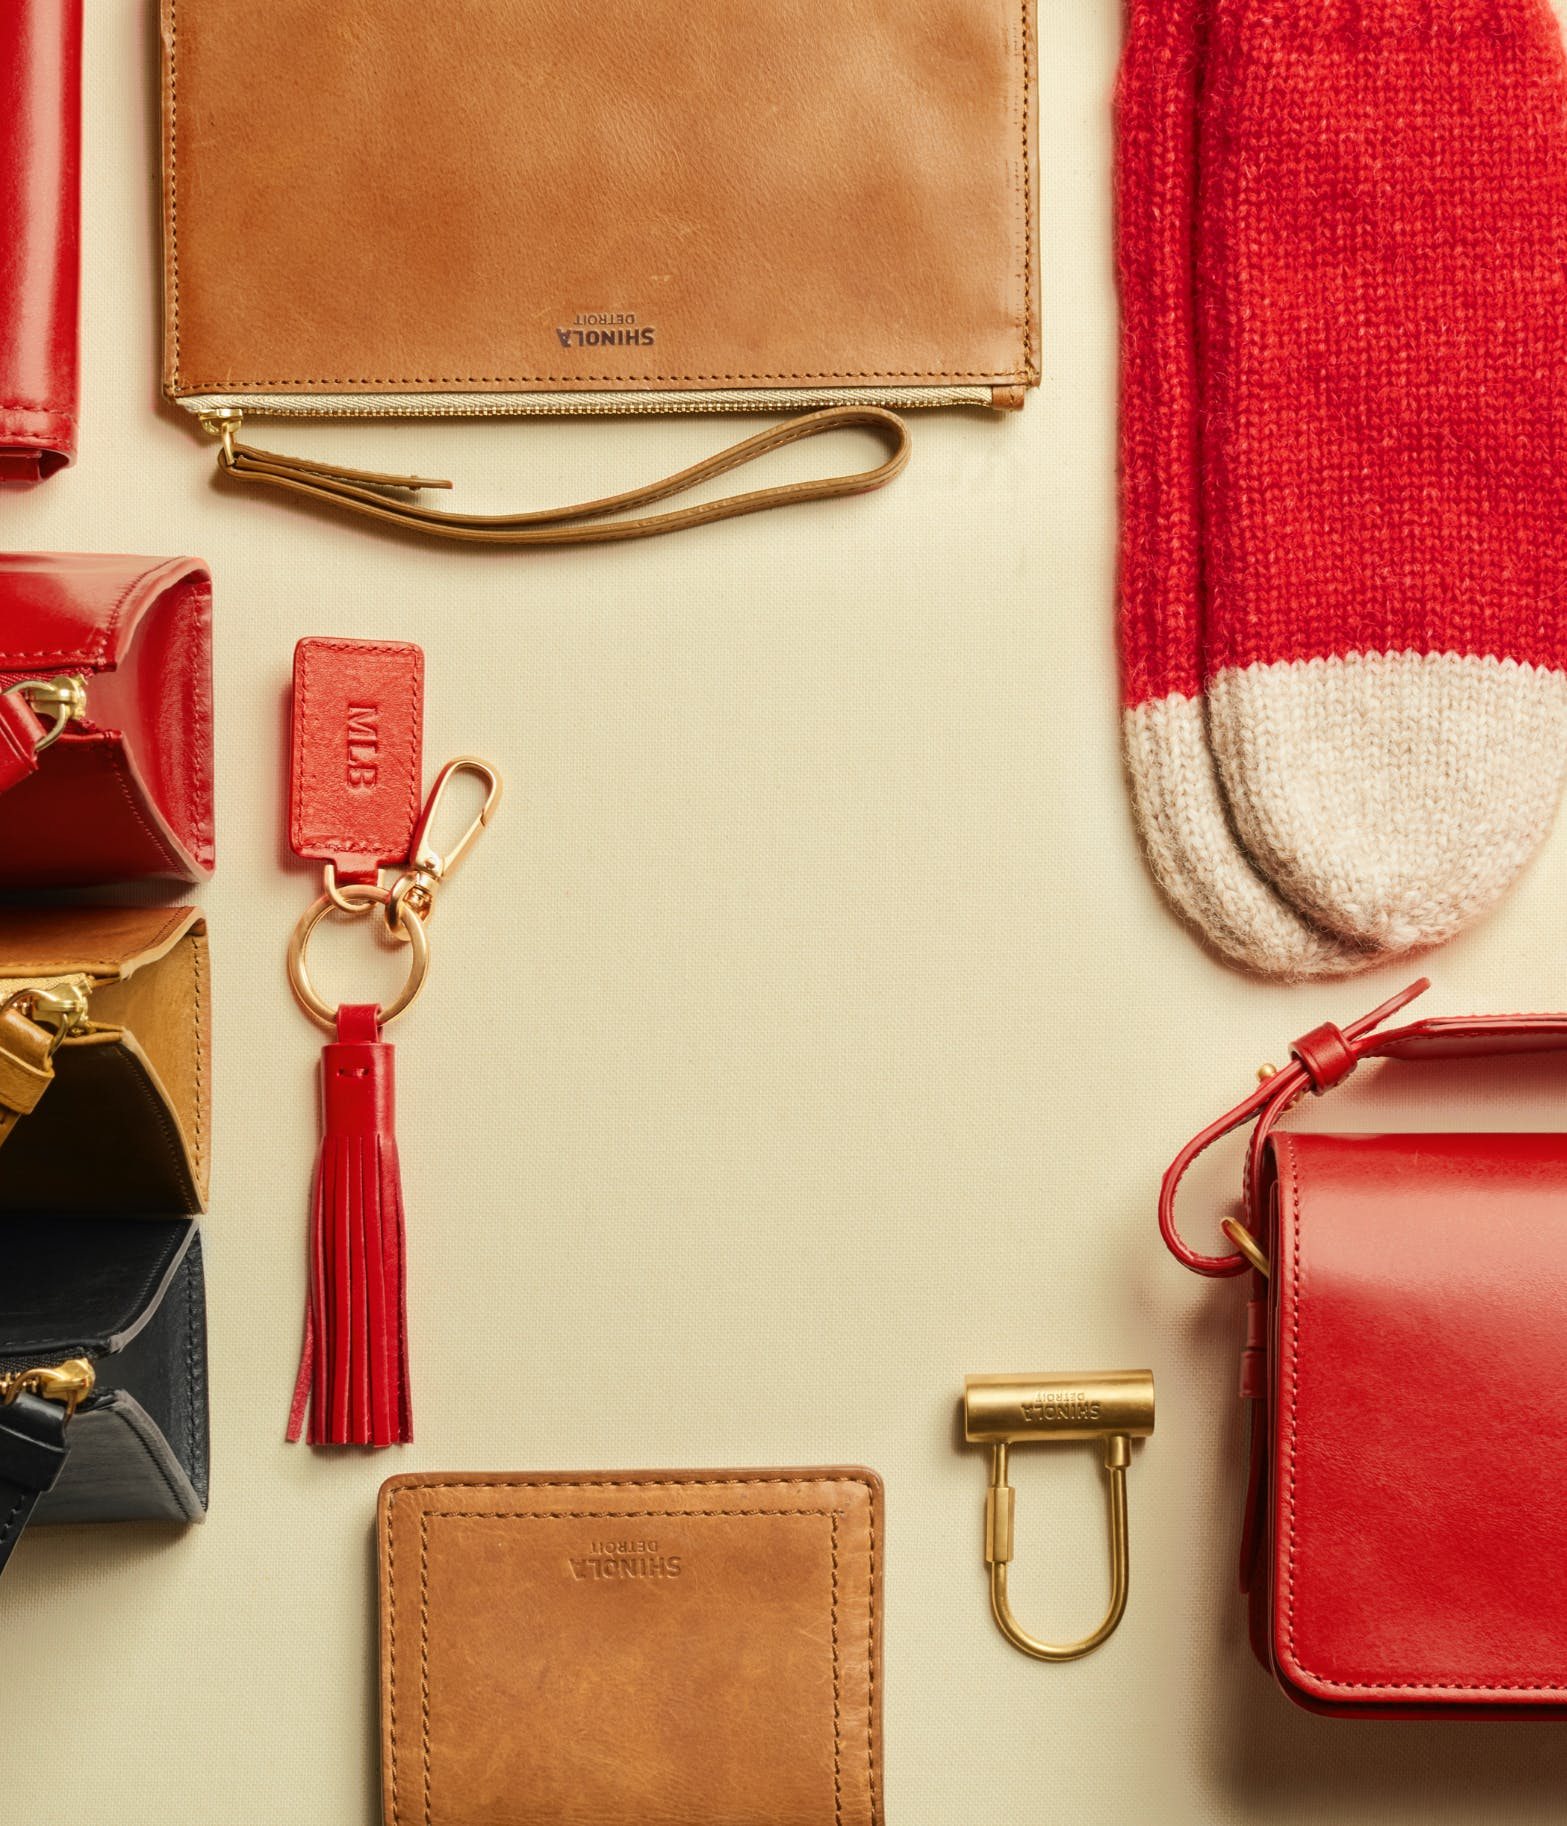 Collection of Shinola women's products